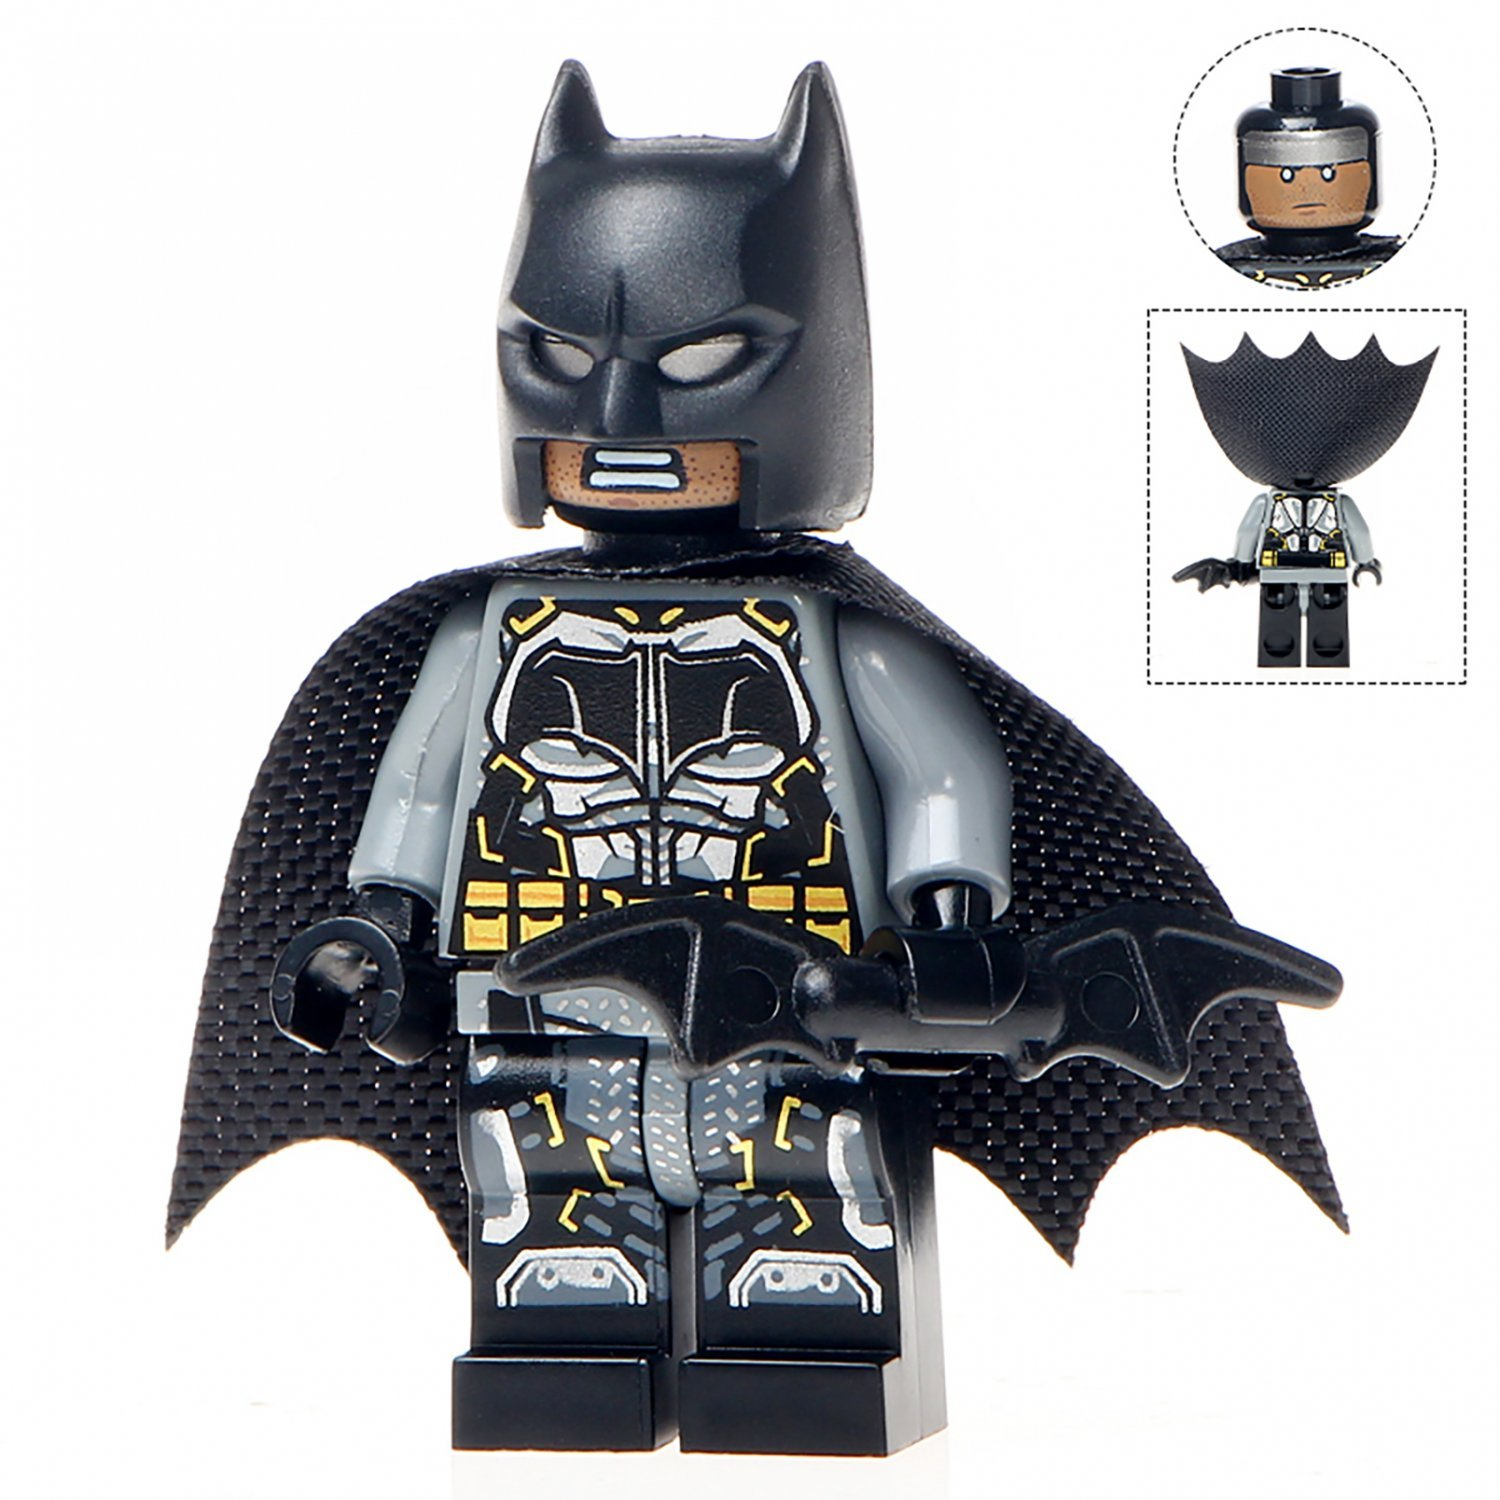 Minifigure Batman from Justice League DC Comics Super Heroes Compatible Lego Building Block Toys